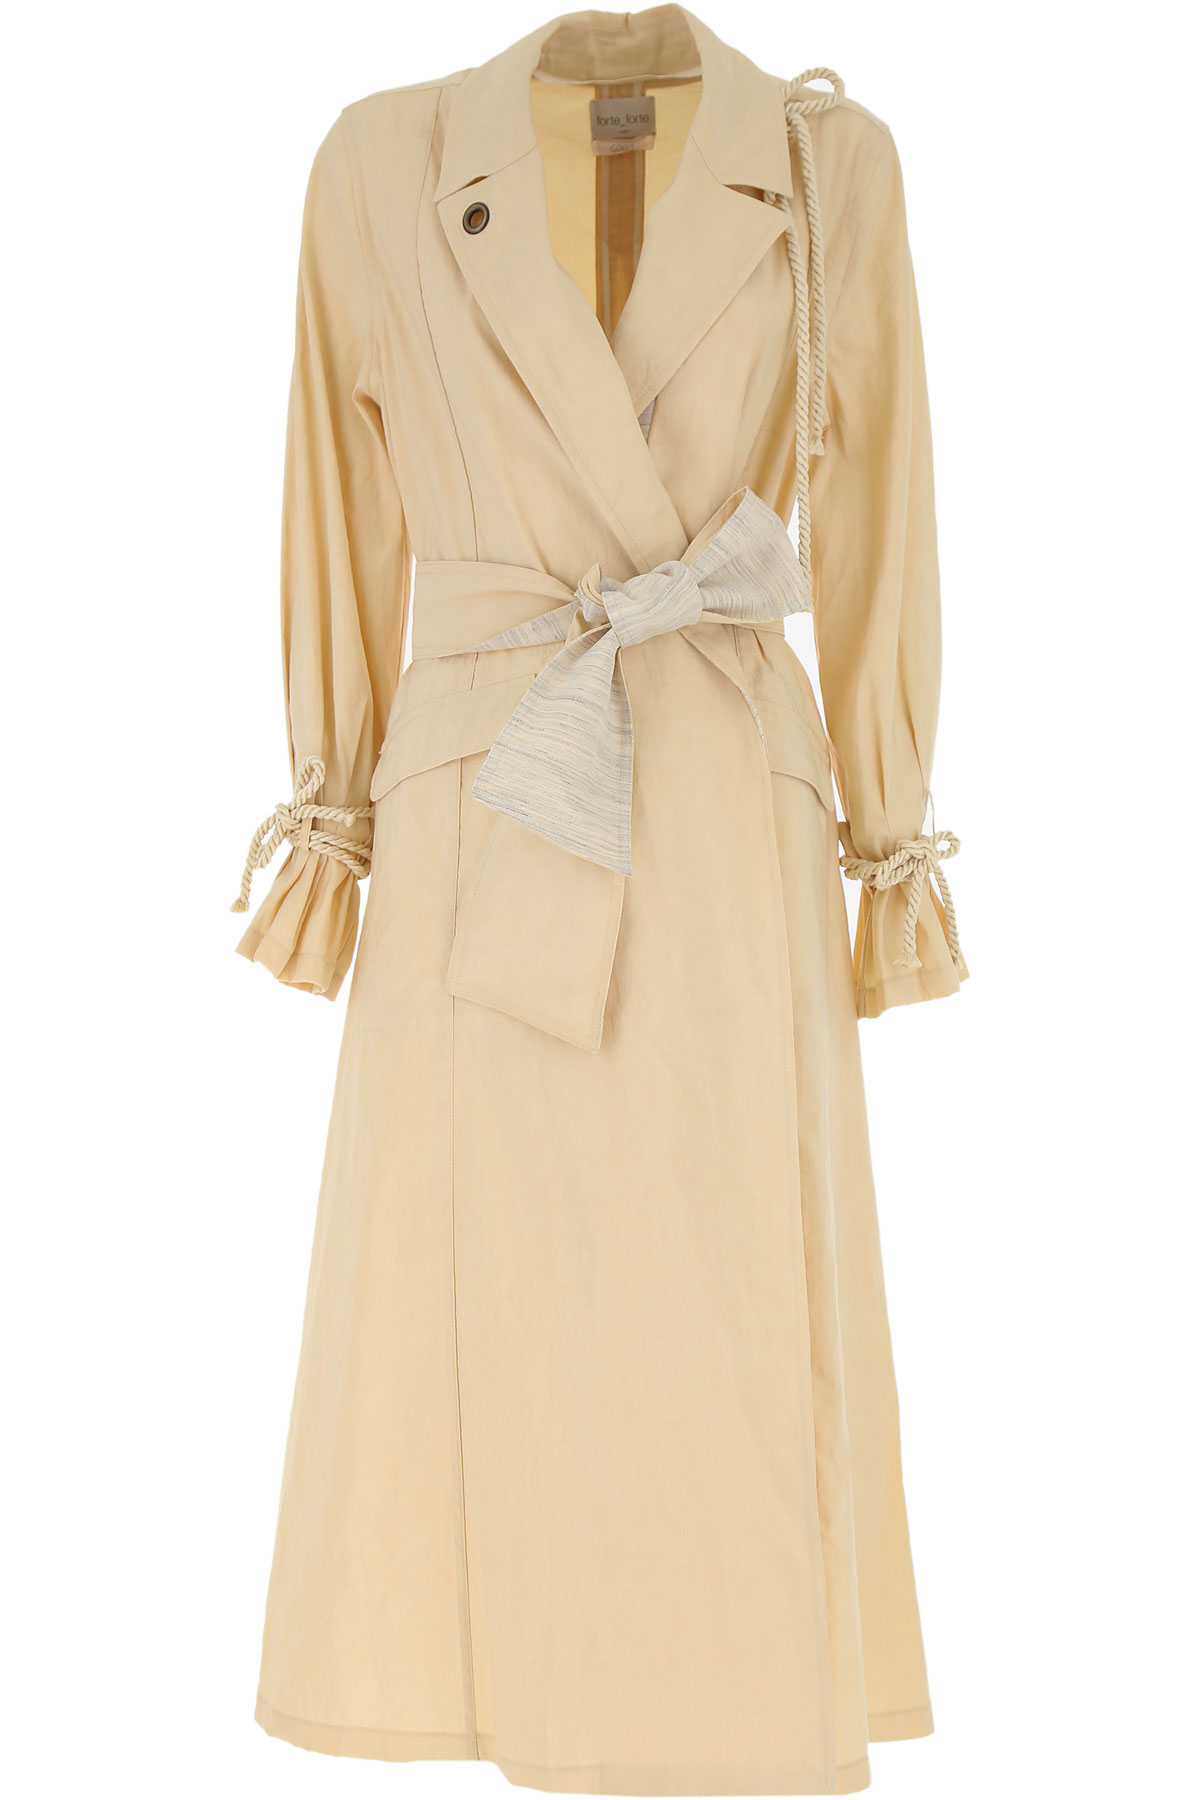 Forte Forte Women's Coat On Sale, Beige, Cotton, 2019